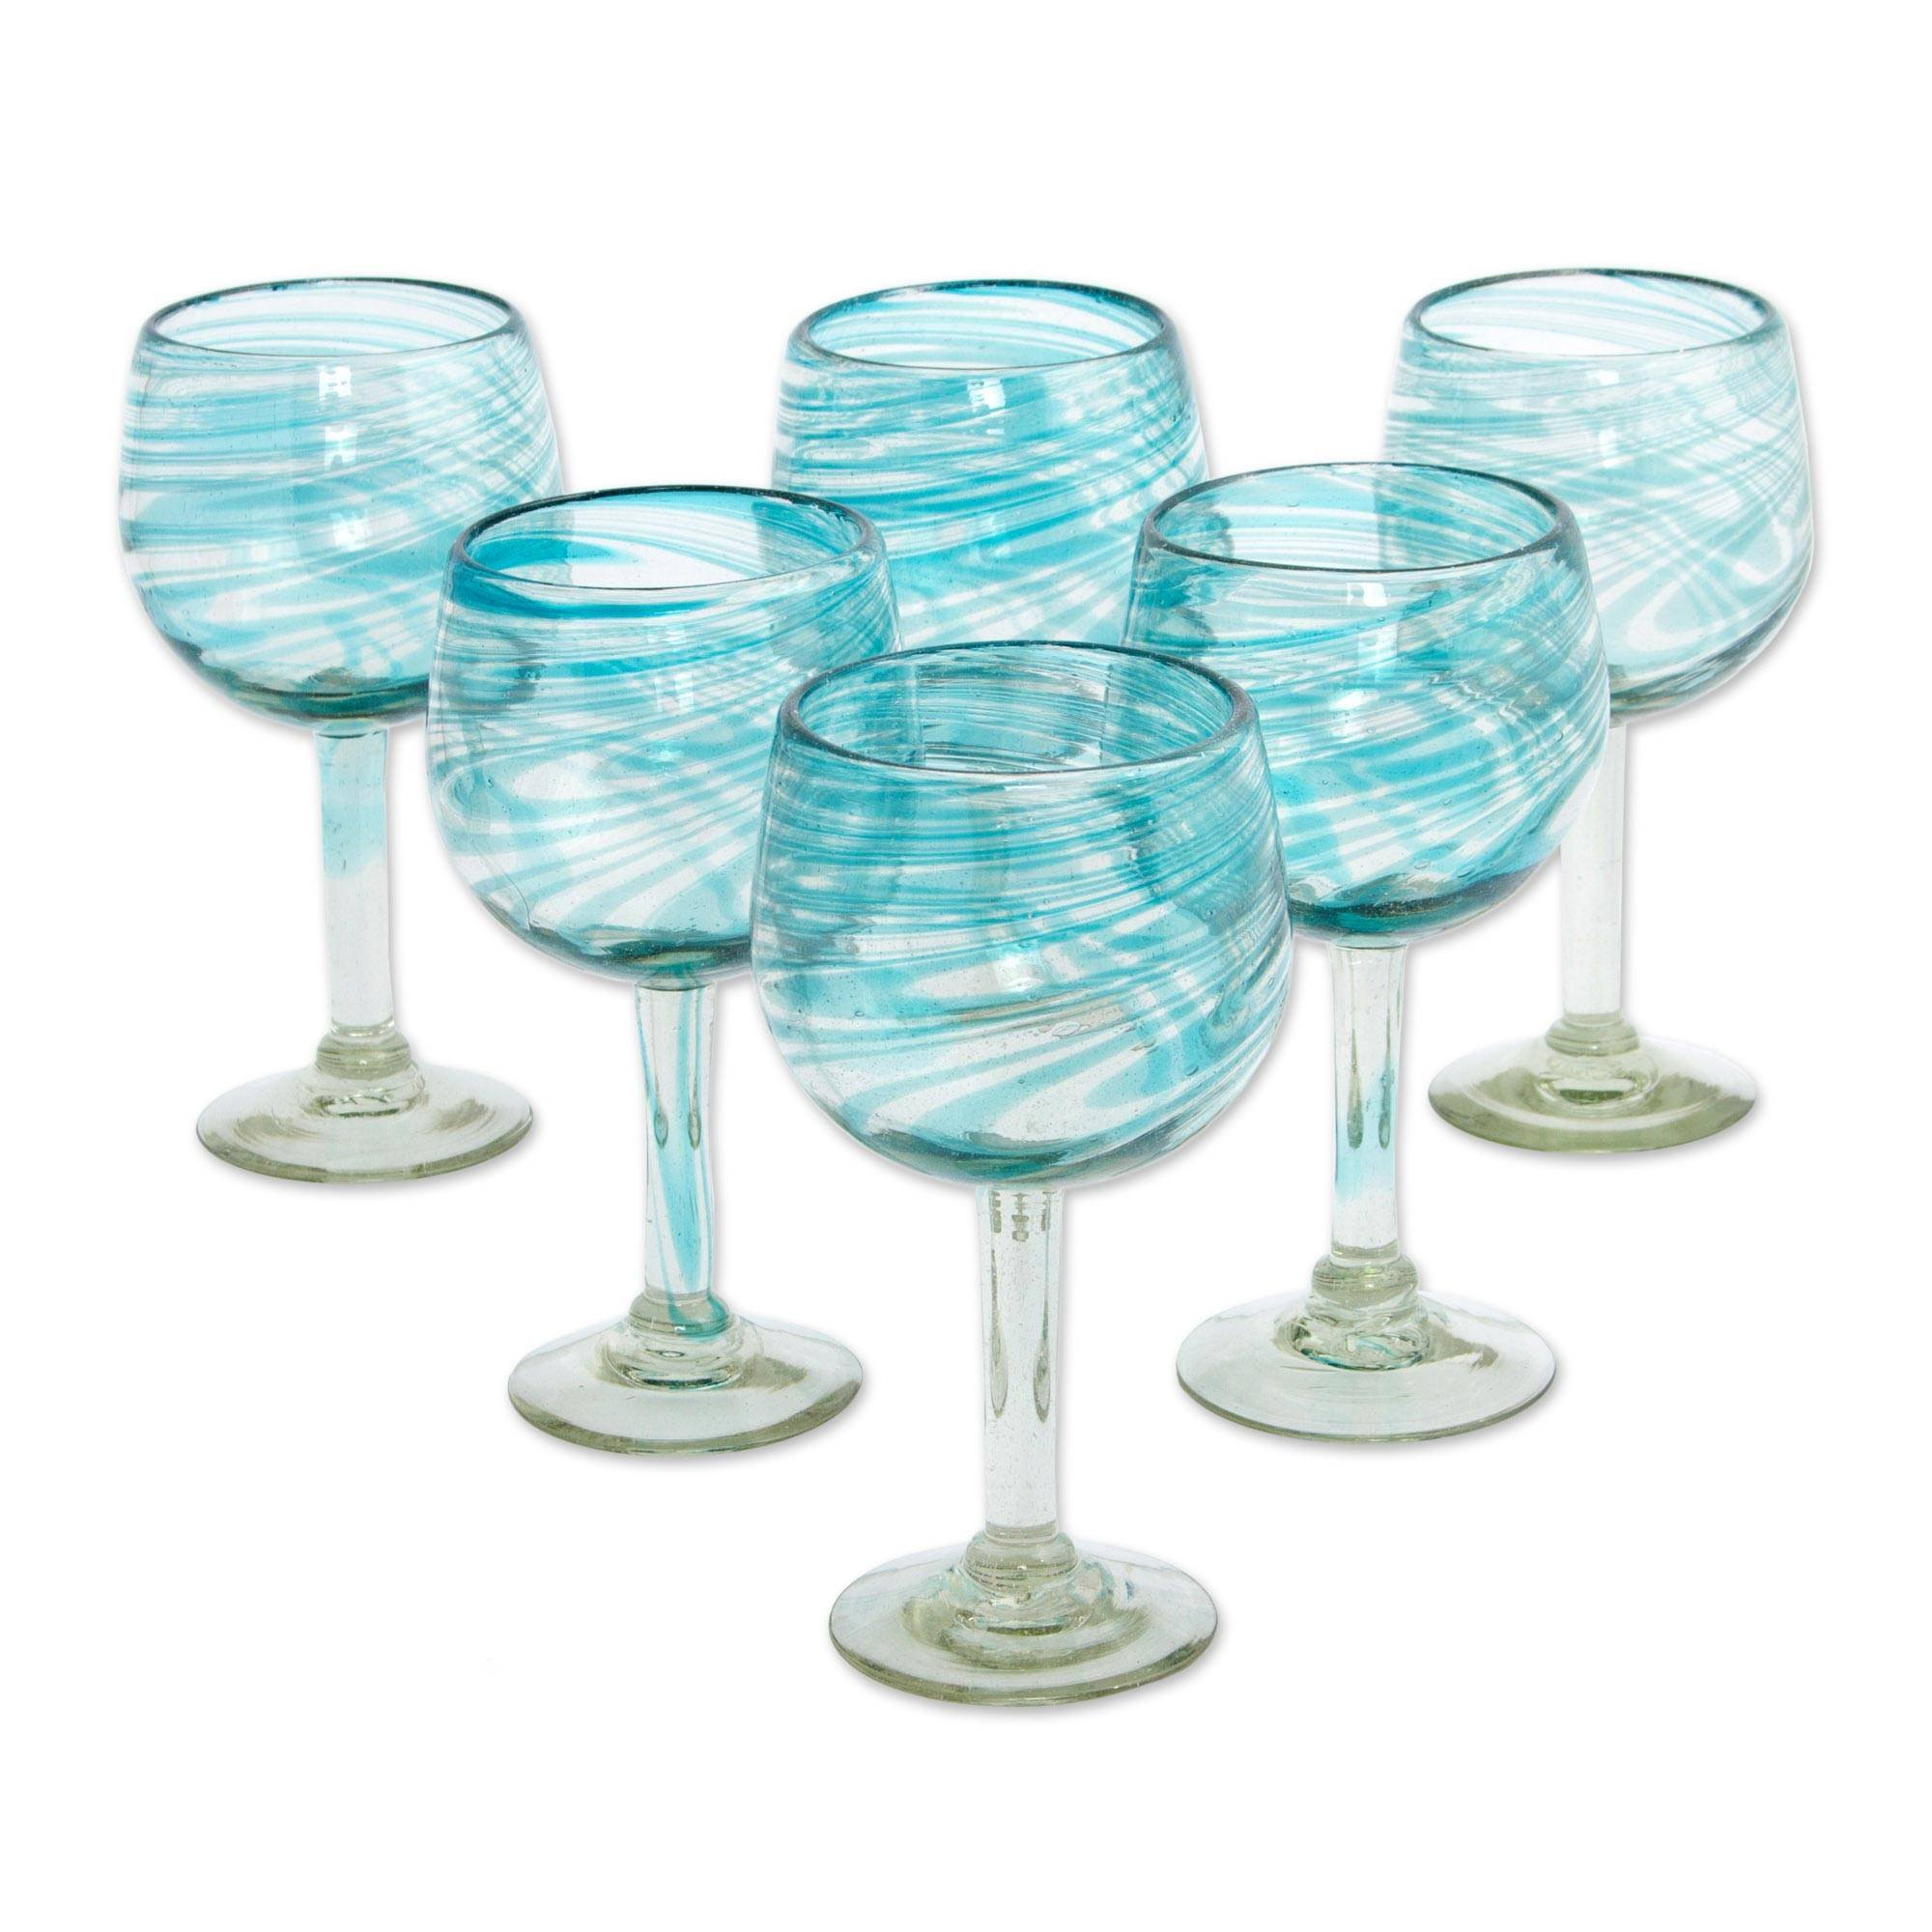 NOVICA 282193 ' 'Elegant Aqua Swirl' Wine Glasses, 7.75''Tall, Blue Clear